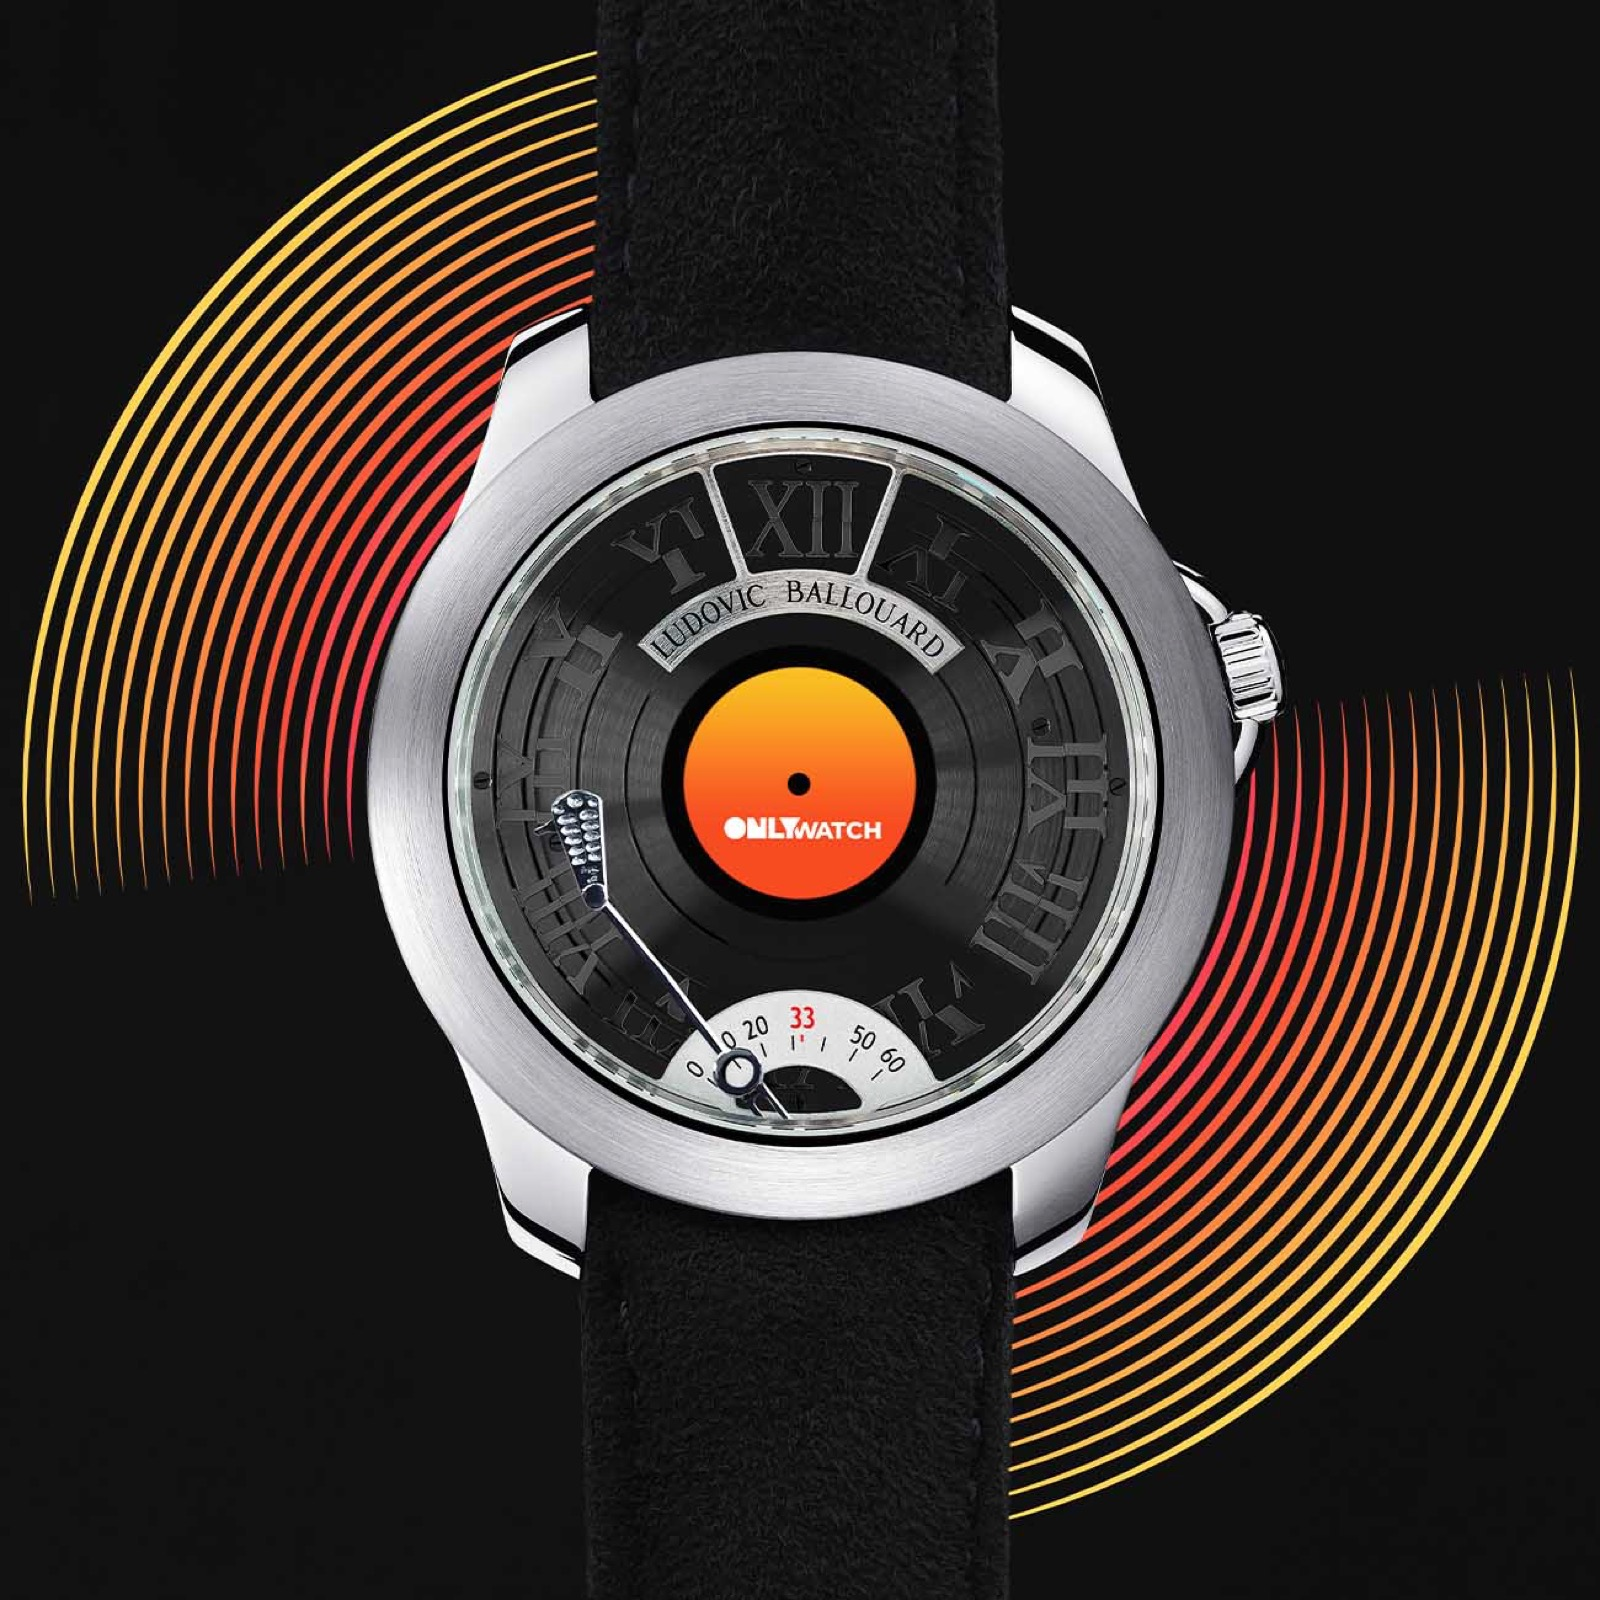 Ludovic-ballouard-only-watch-2021